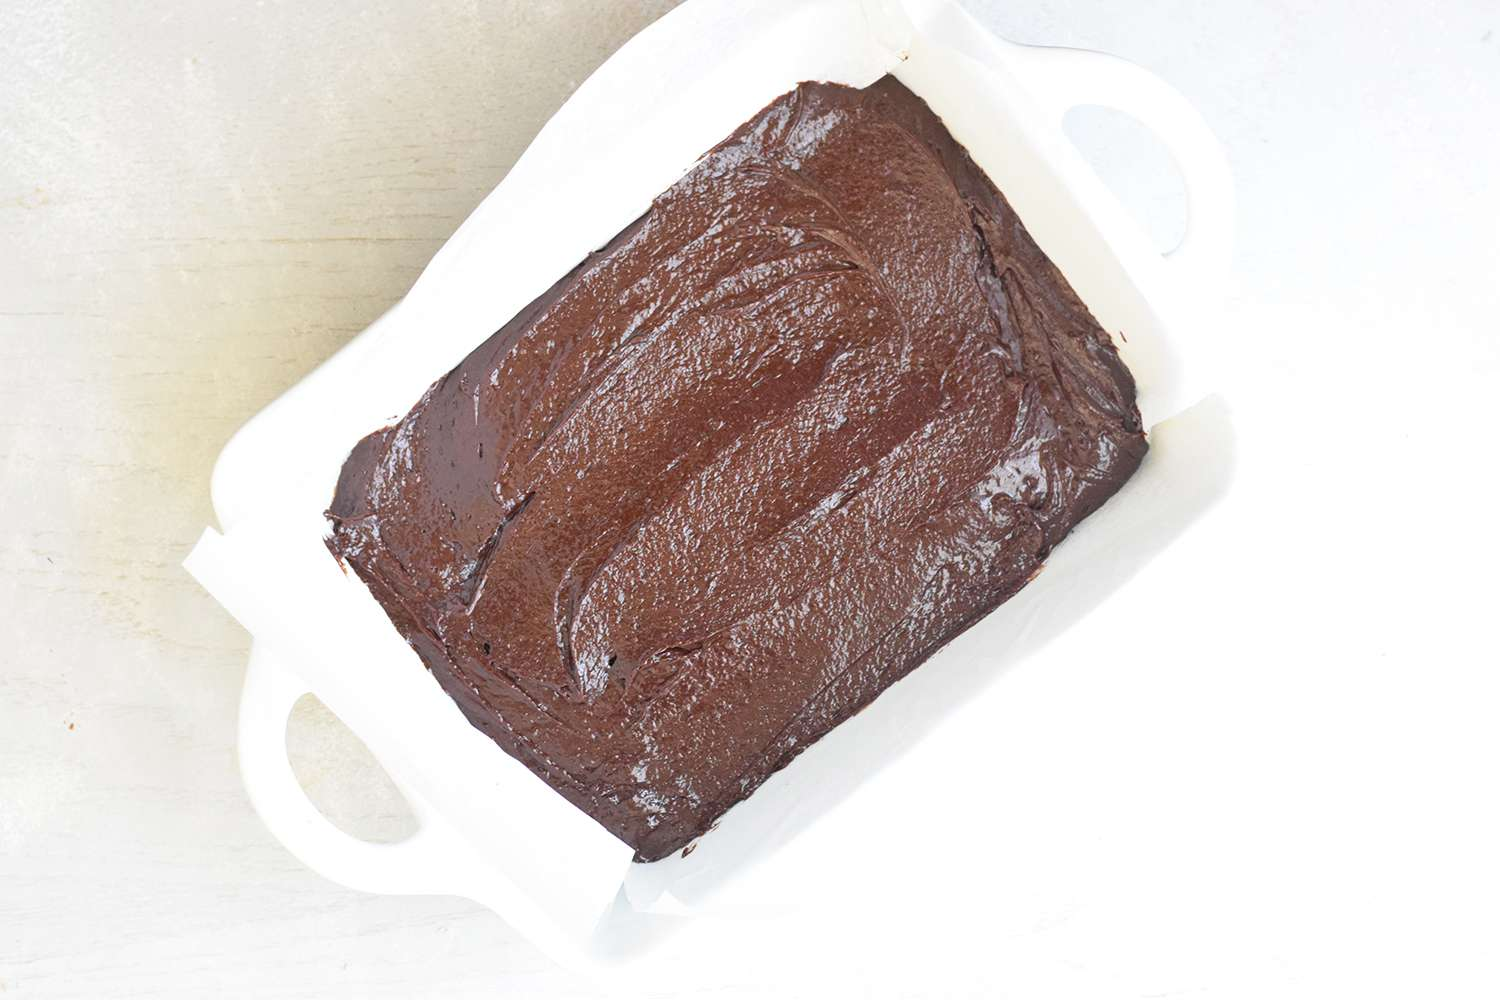 Add the brownie batter to the pan